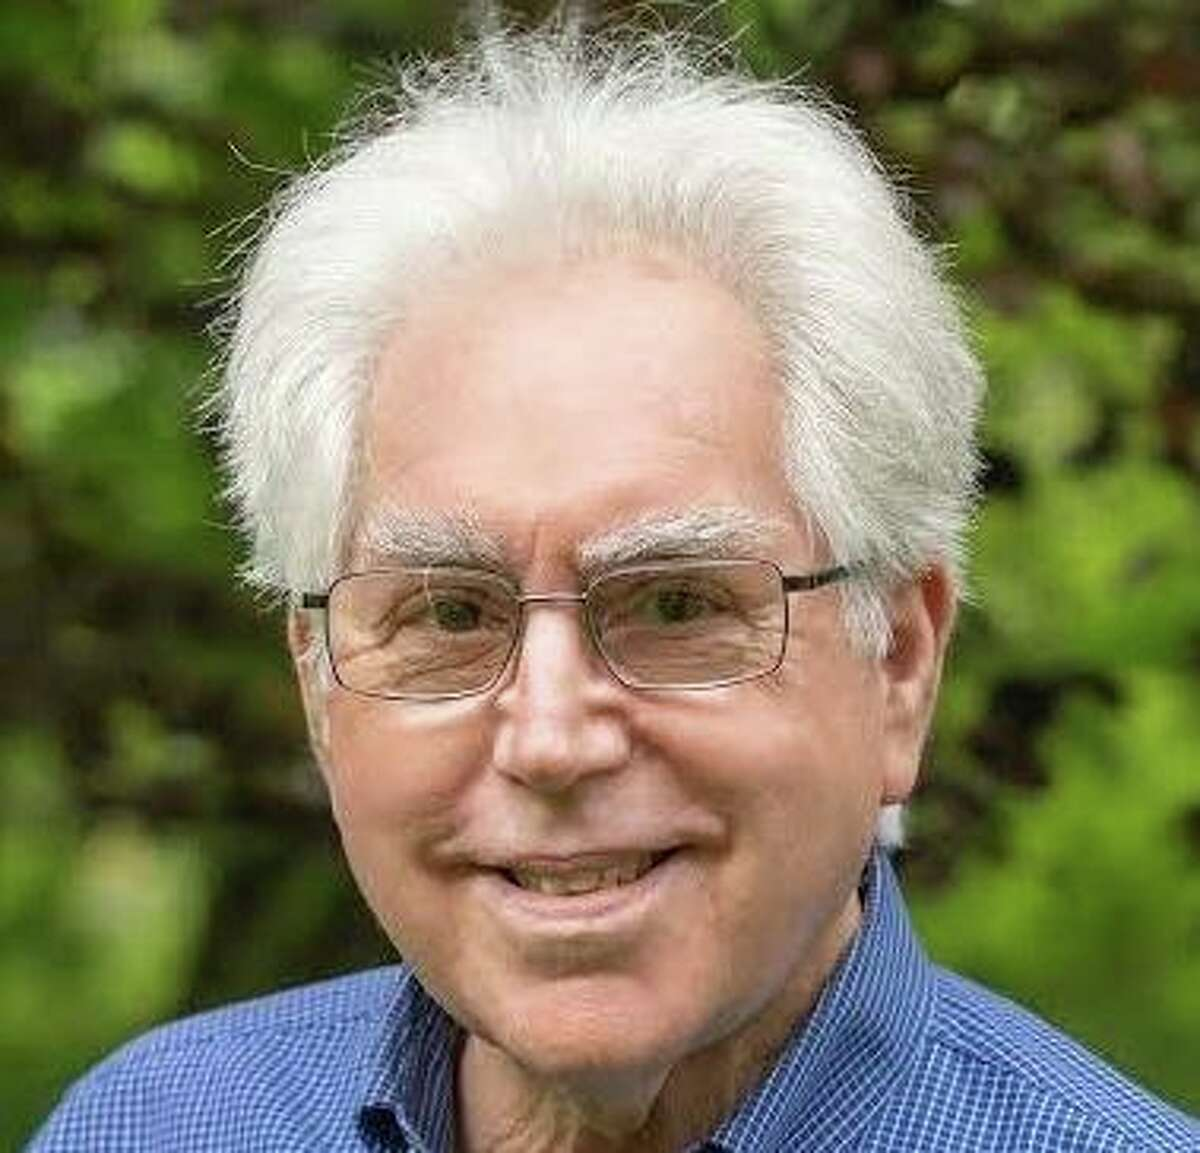 """In a talk before the Retired Men's Association of Greenwich, author Tom Shachtman will discuss economic patriotism, war profiteering, and other issues raised in his new book, """"The Founding Fortunes: How the Wealthy Paid for and Profited from America's Revolution."""""""